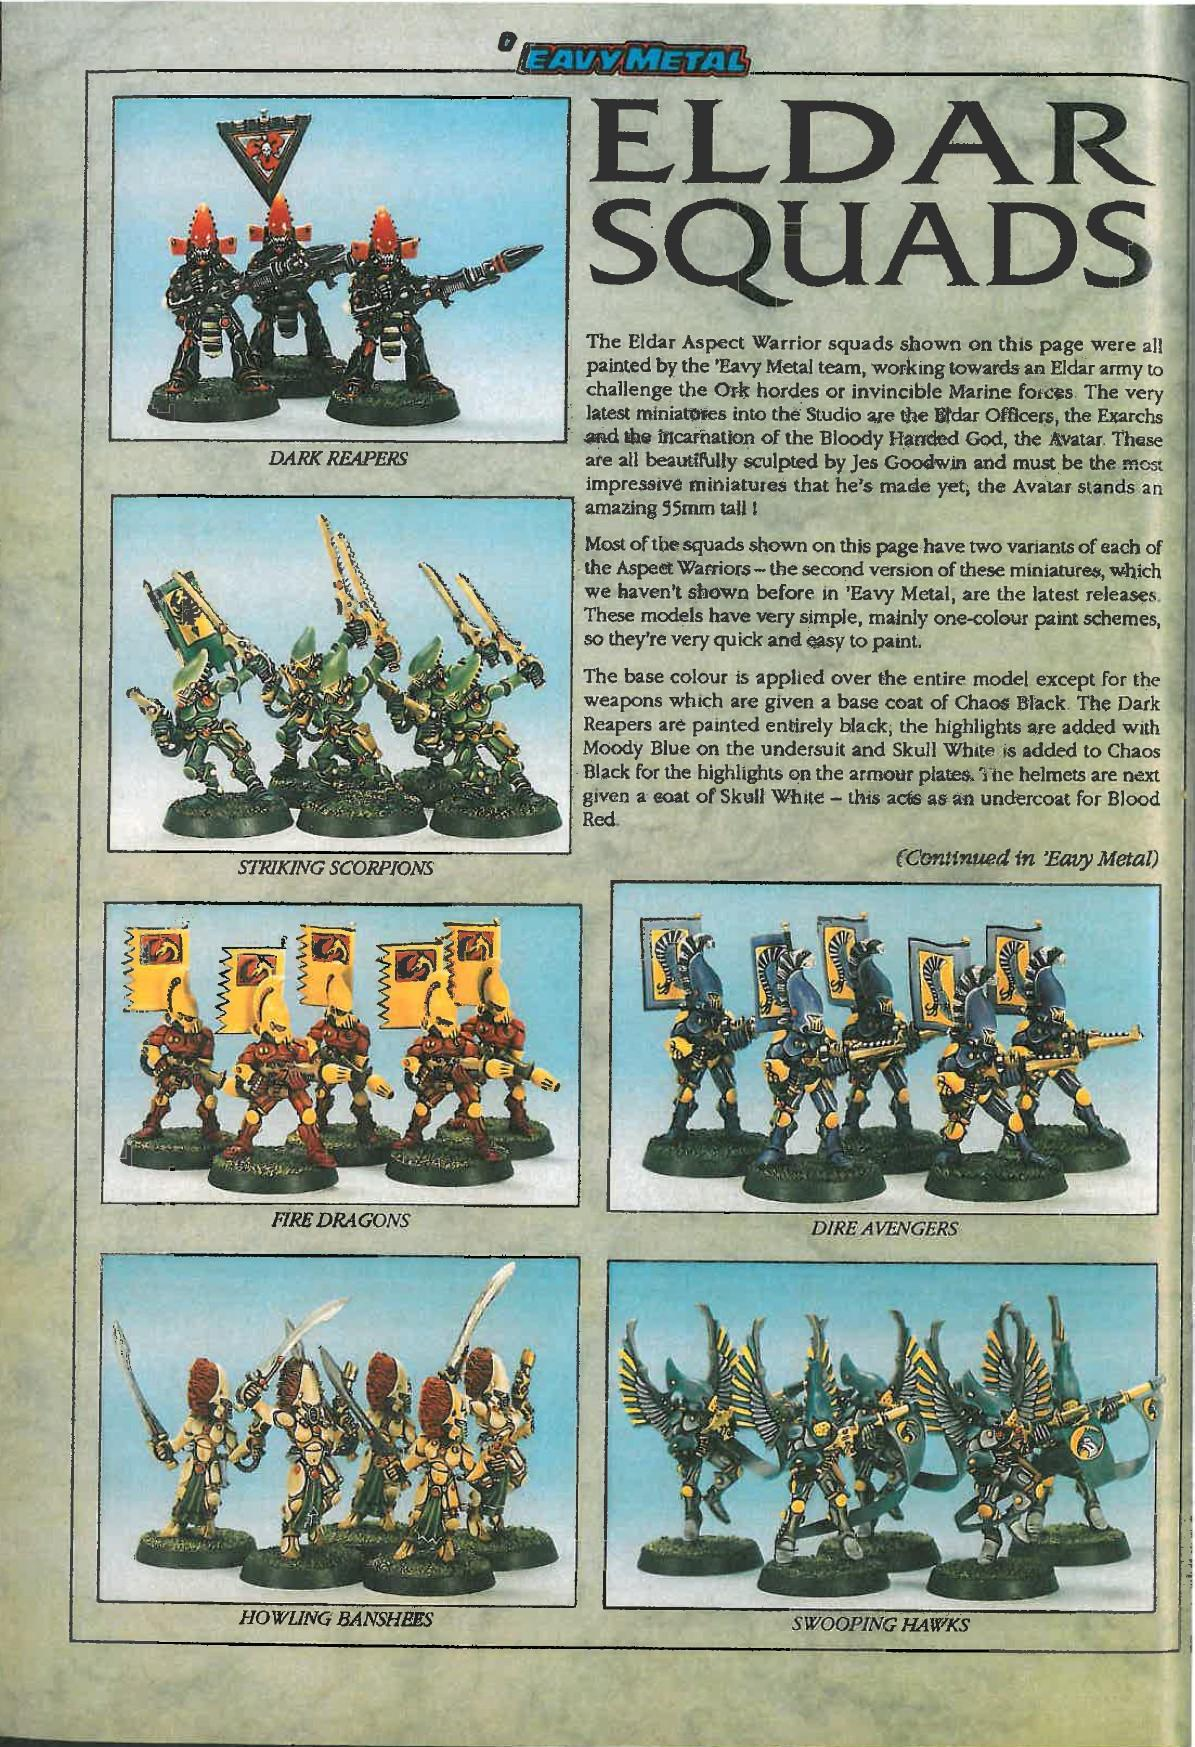 'eavy Metal, Aspect Warrior, Copyright Games Workshop, Dark Reapers, Dire Avengers, Eldar, Fire Dragon, Howling Banshees, Retro Review, Striking Scorpions, Swooping Hawks, Warhammer 40,000, White Dwarf